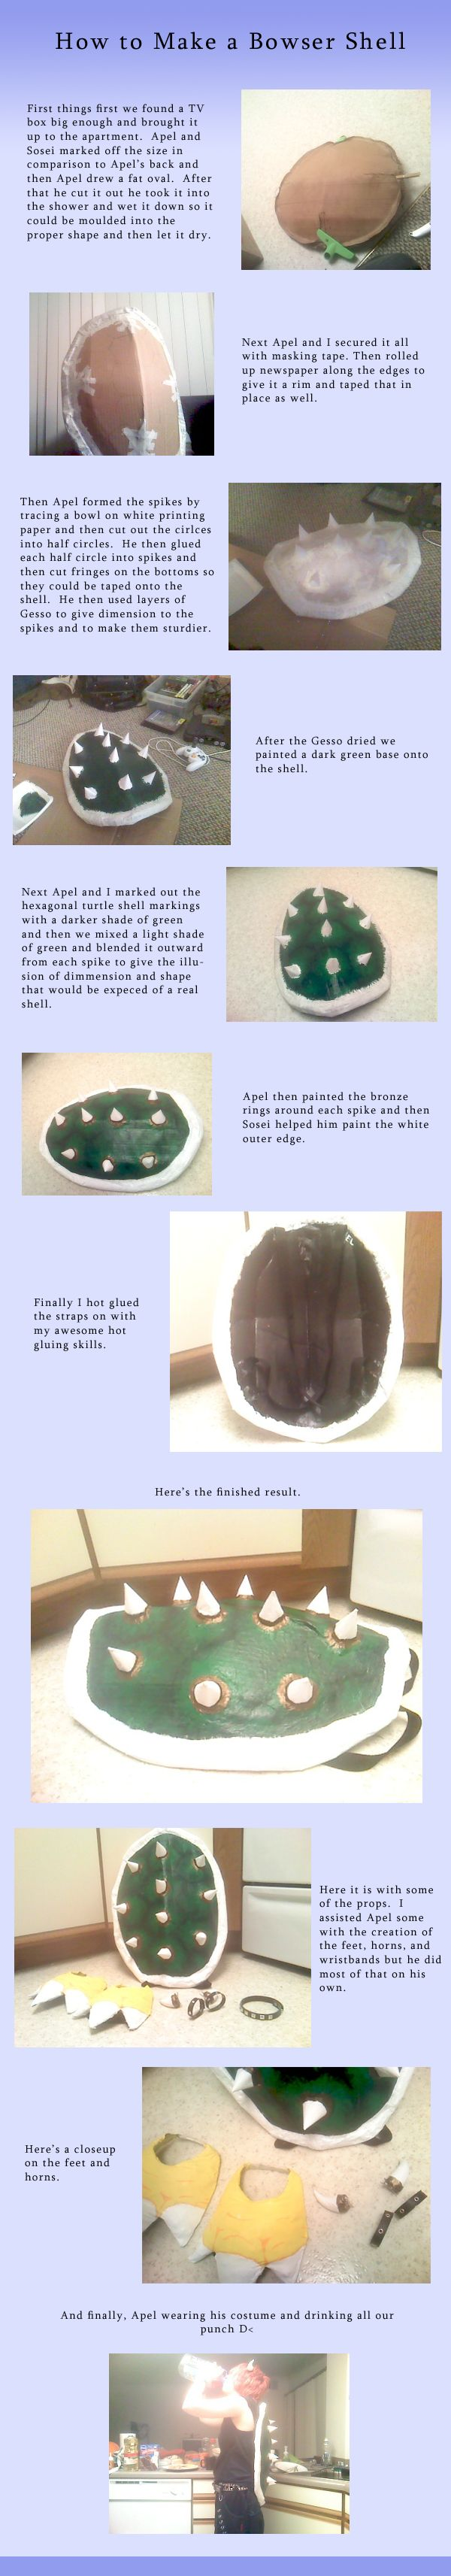 How to Make a Bowser Shell by *MythicPhoenix on deviantART